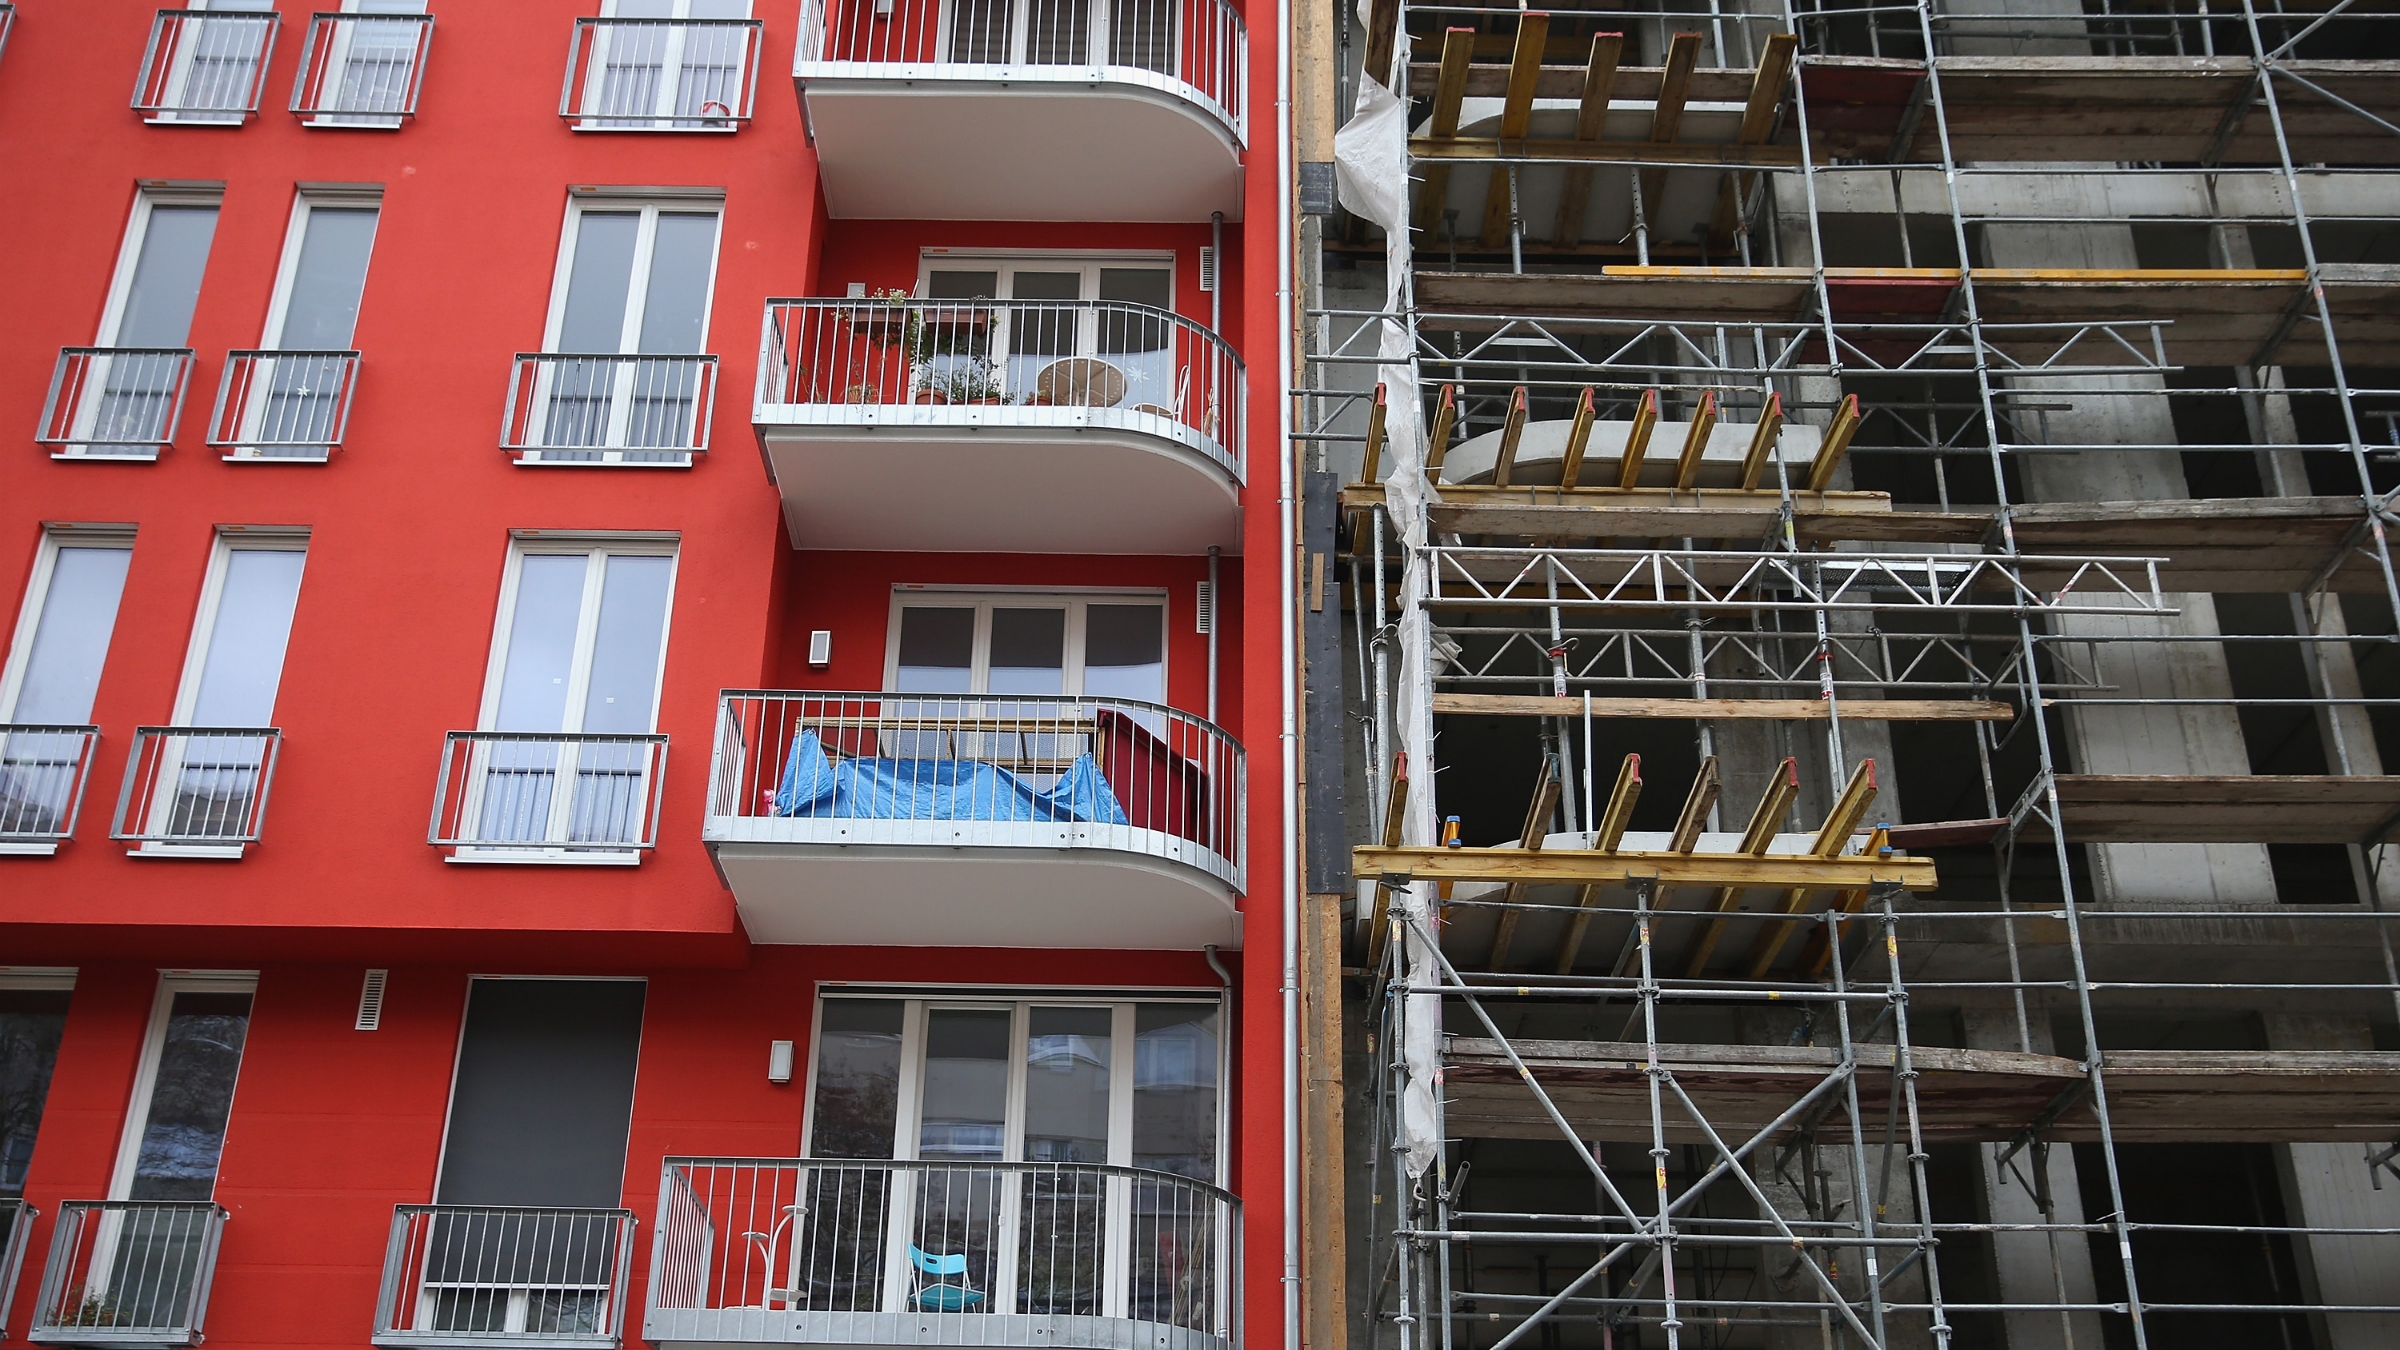 Most Germans don't buy their homes, they rent. Here's why ...